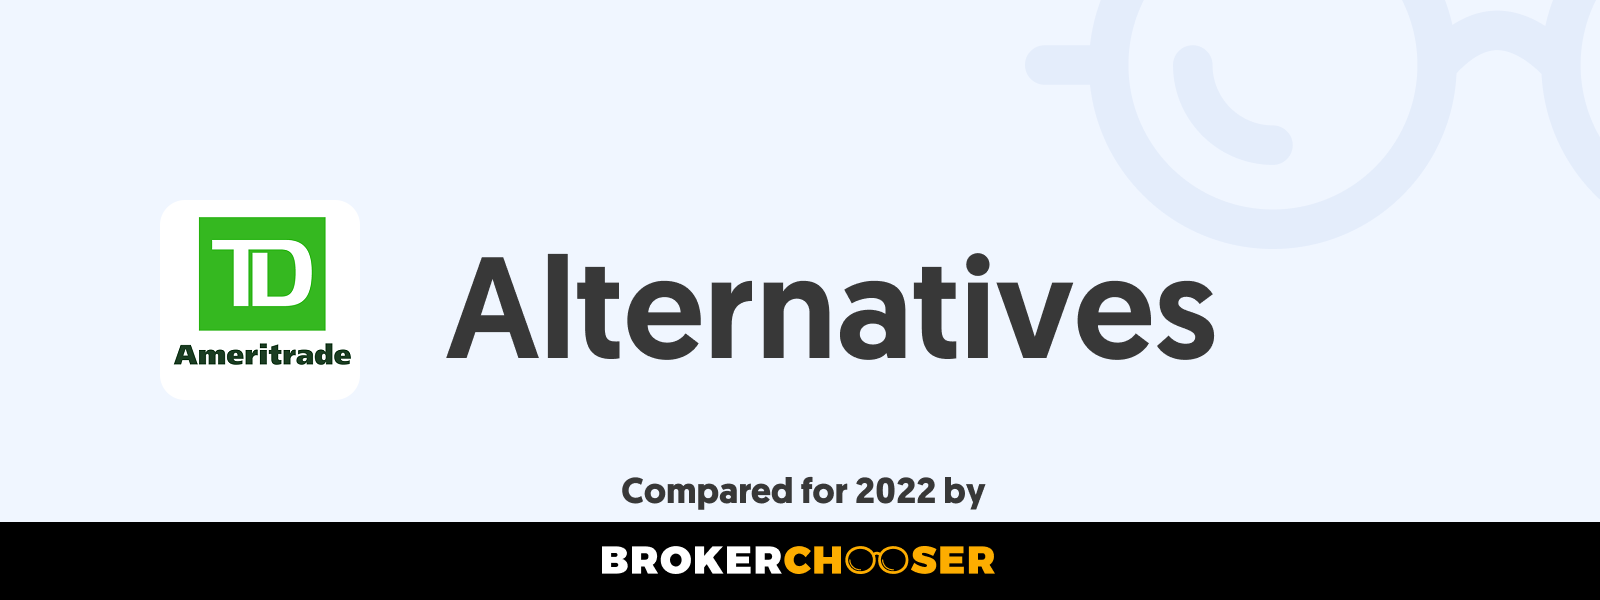 TD Ameritrade Alternatives